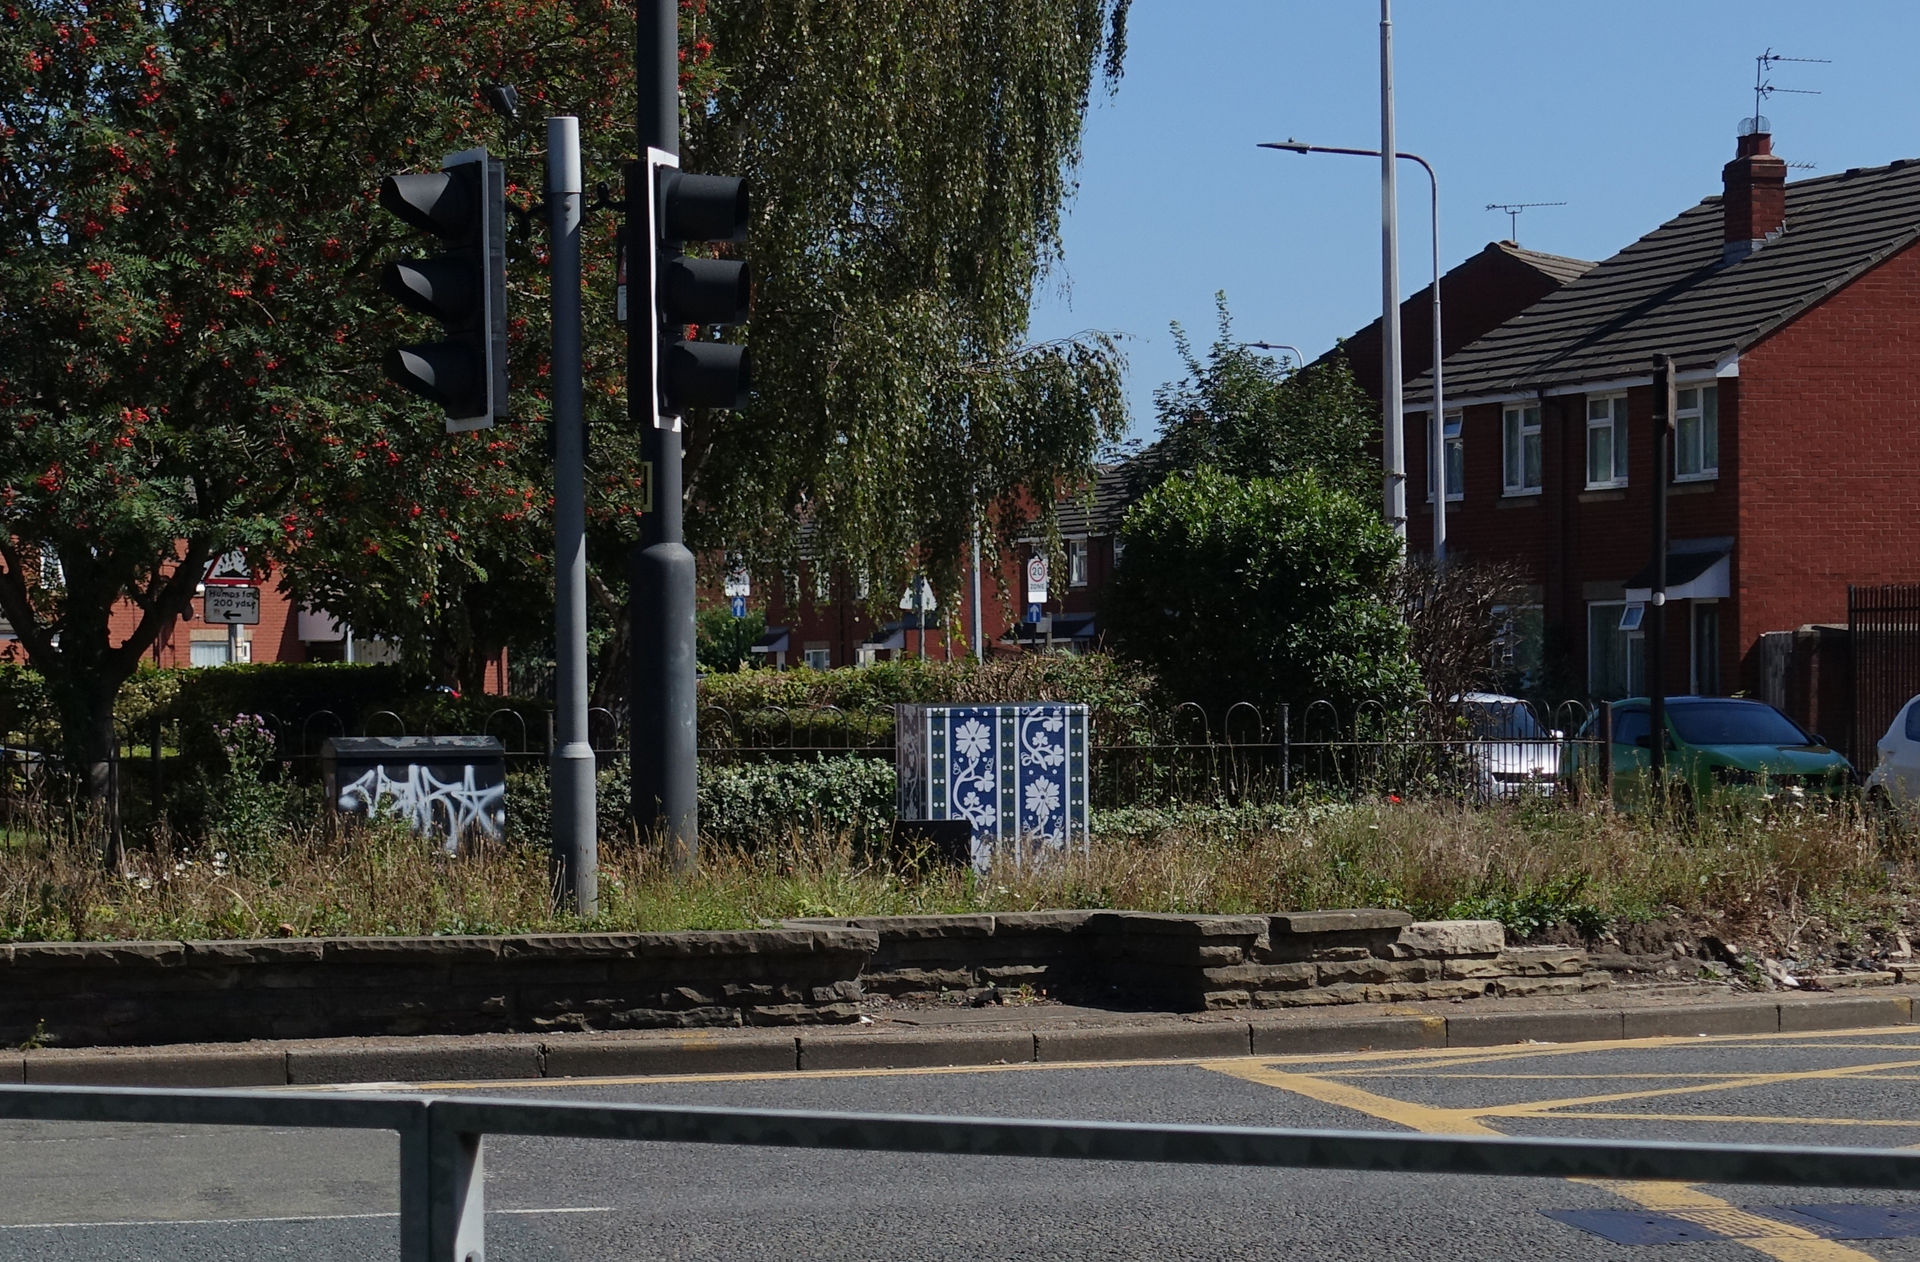 Tile signal control box art on Beverley Road, Hull by Lydia Caprani. Commissioned by Hull City Council.Sculcoates Lane Queens Road Junction.